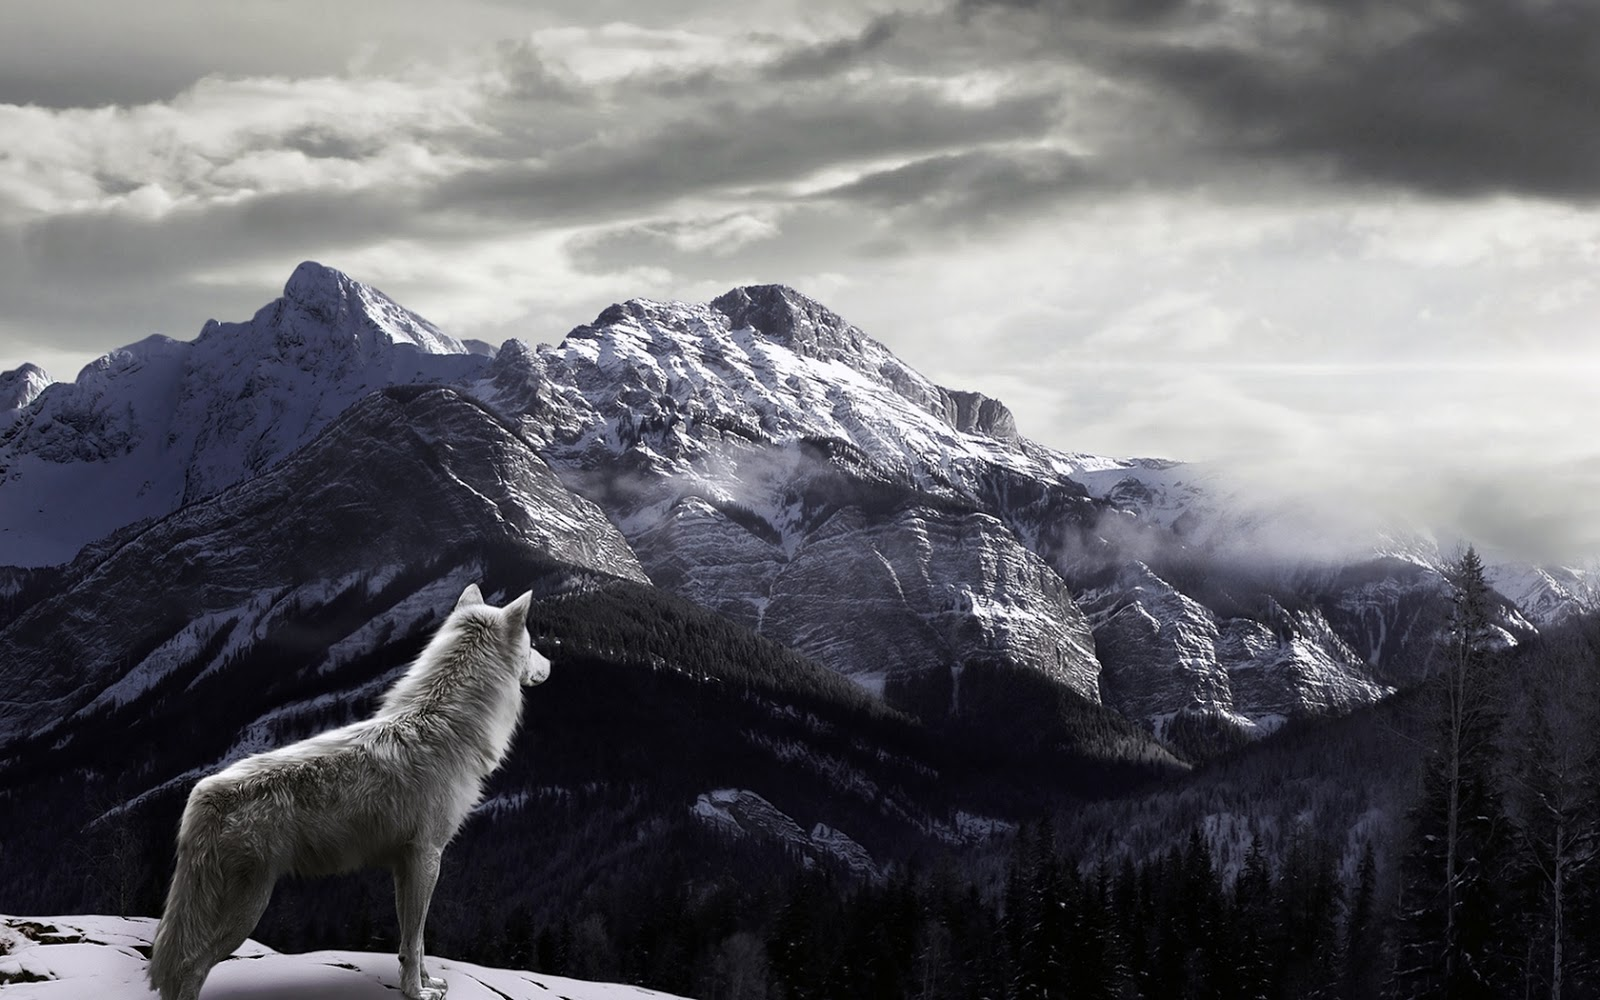 http://4.bp.blogspot.com/-33pMylOCGz4/UKd2mZyLJ5I/AAAAAAAAGKg/19k1ilmxyDA/s1600/Wolf-Watching-Snowy-Fog-Covered-Mountains-HD-Wallpaper.jpg